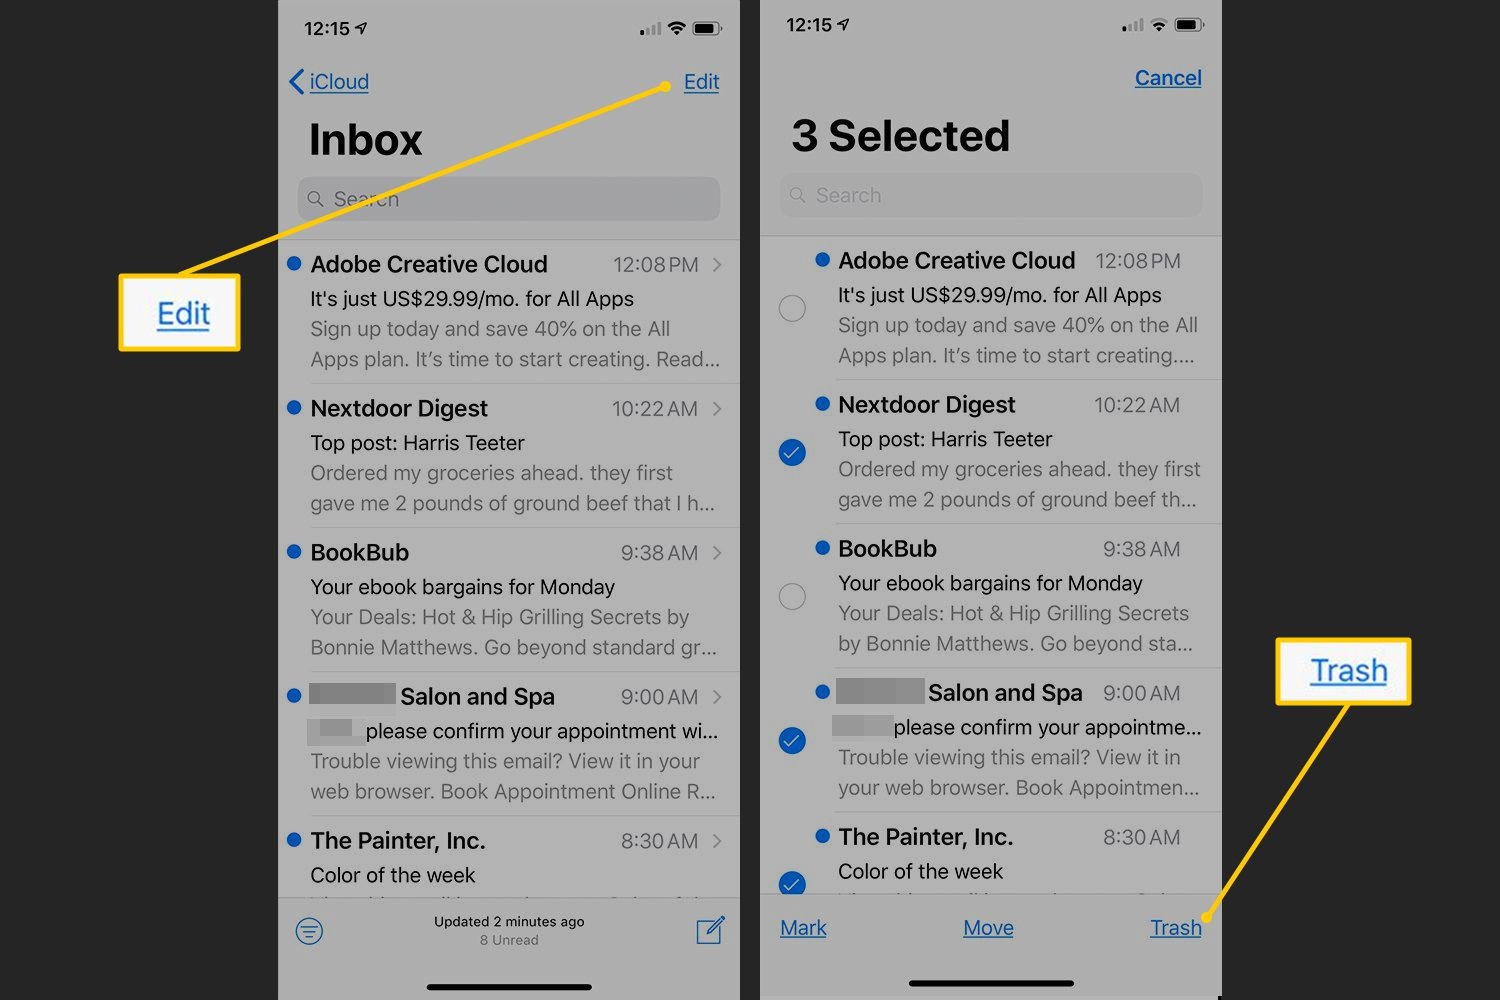 Moving, Deleting, Marking Messages in iPhone Mail